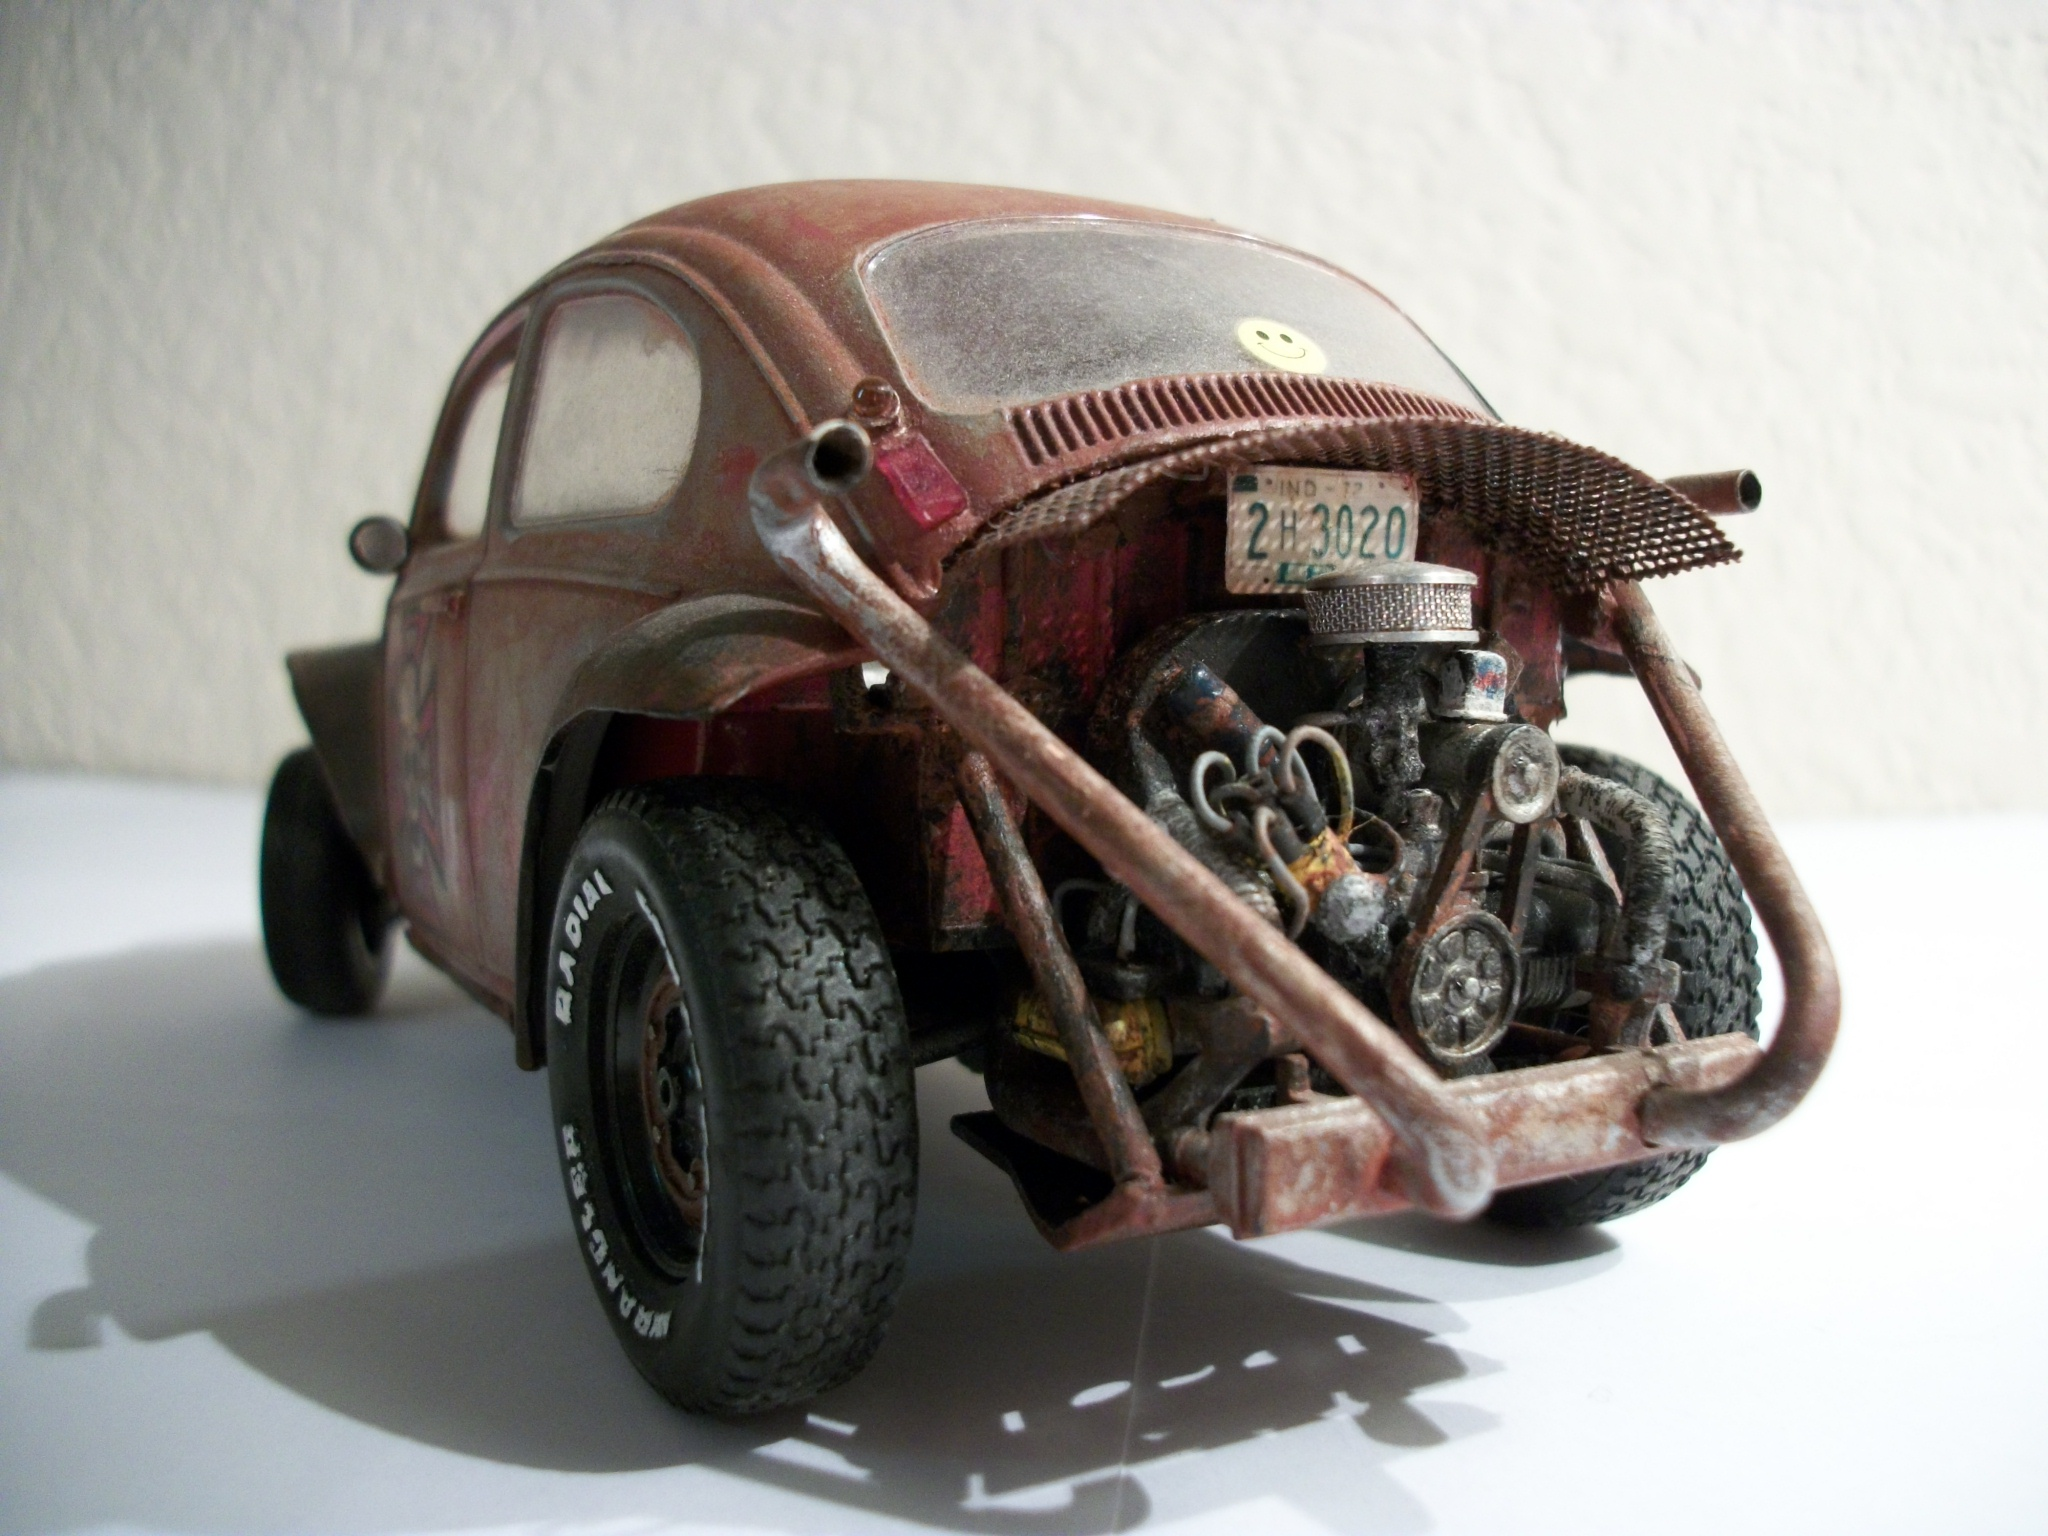 Wwwmadmaxmoviescom View Topic The Feral Buggy